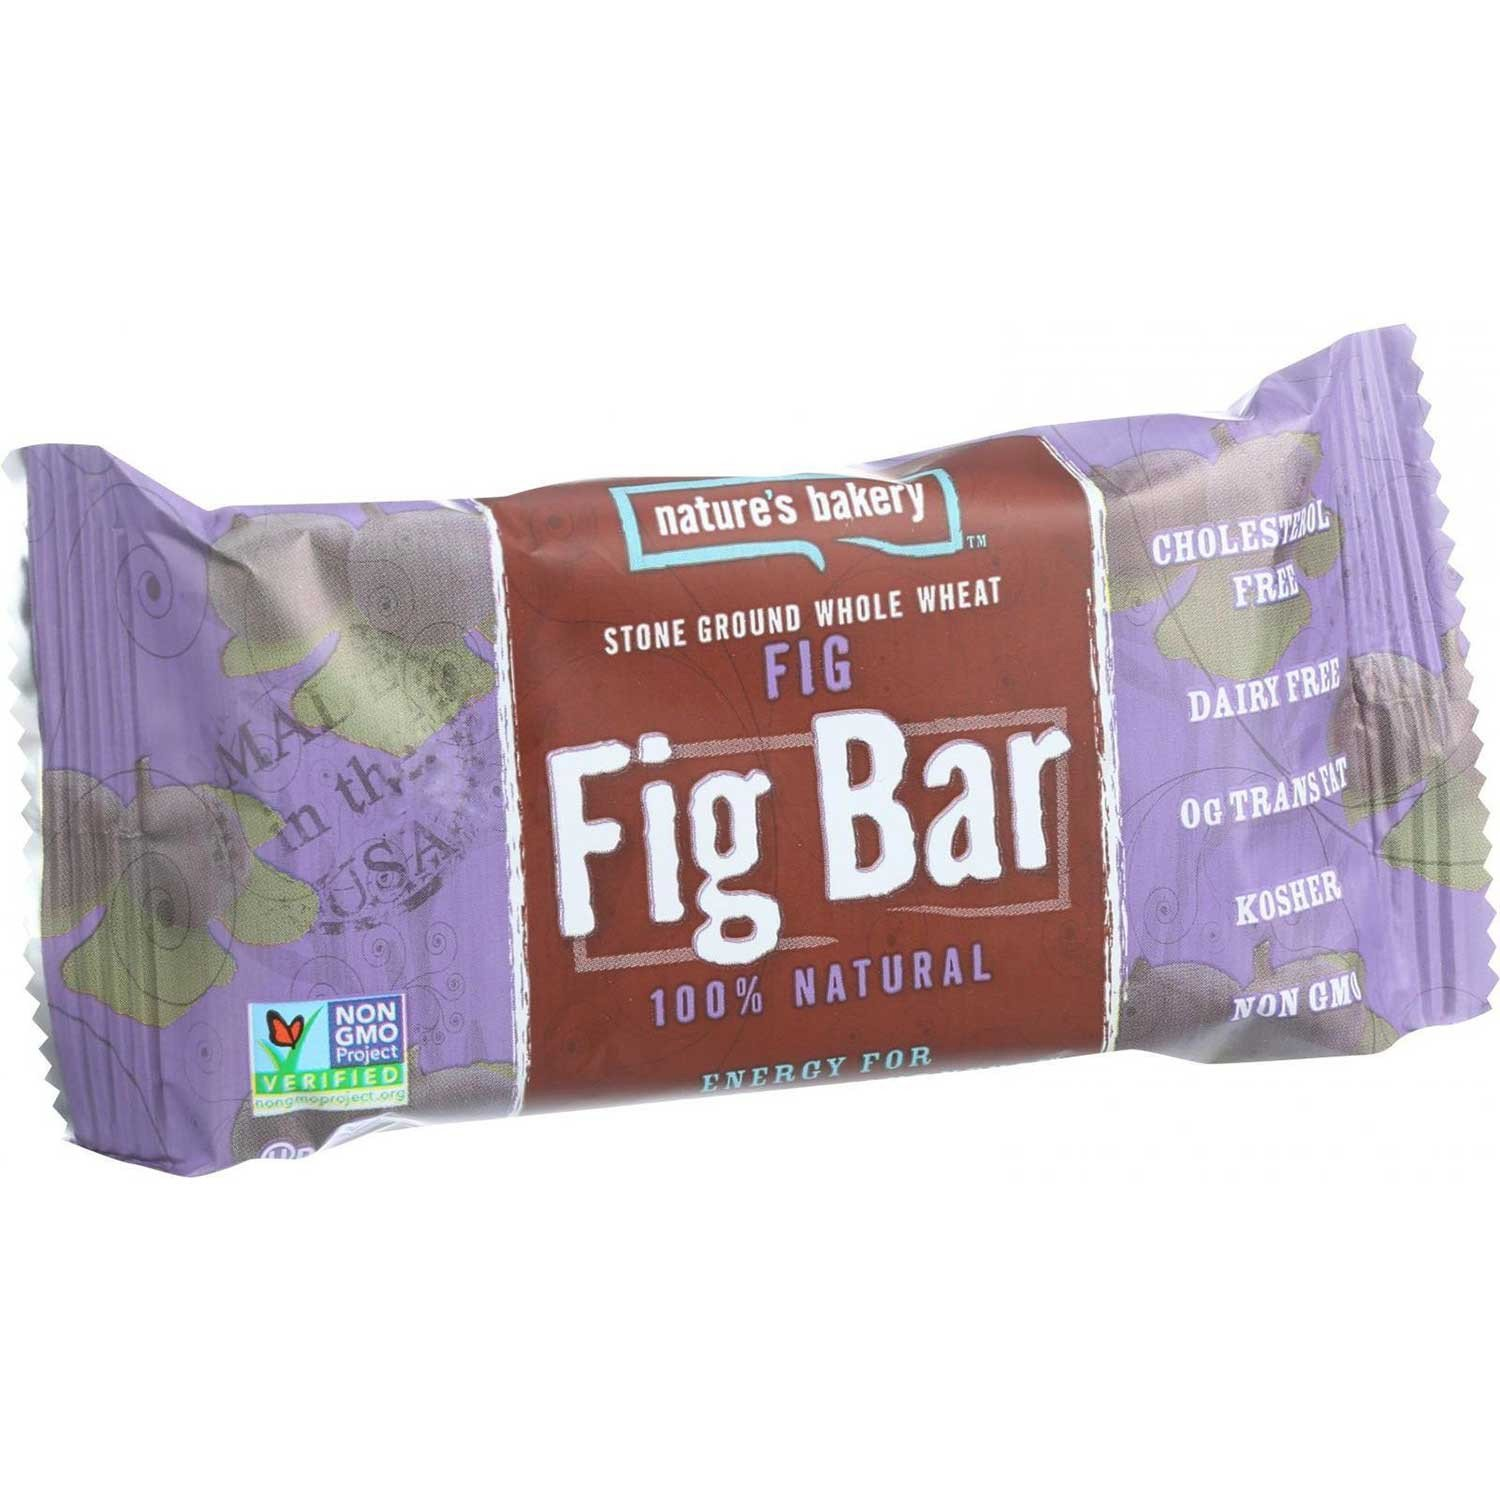 Nature's Bakery Original Fig Bar (Whole Wheat), 57g